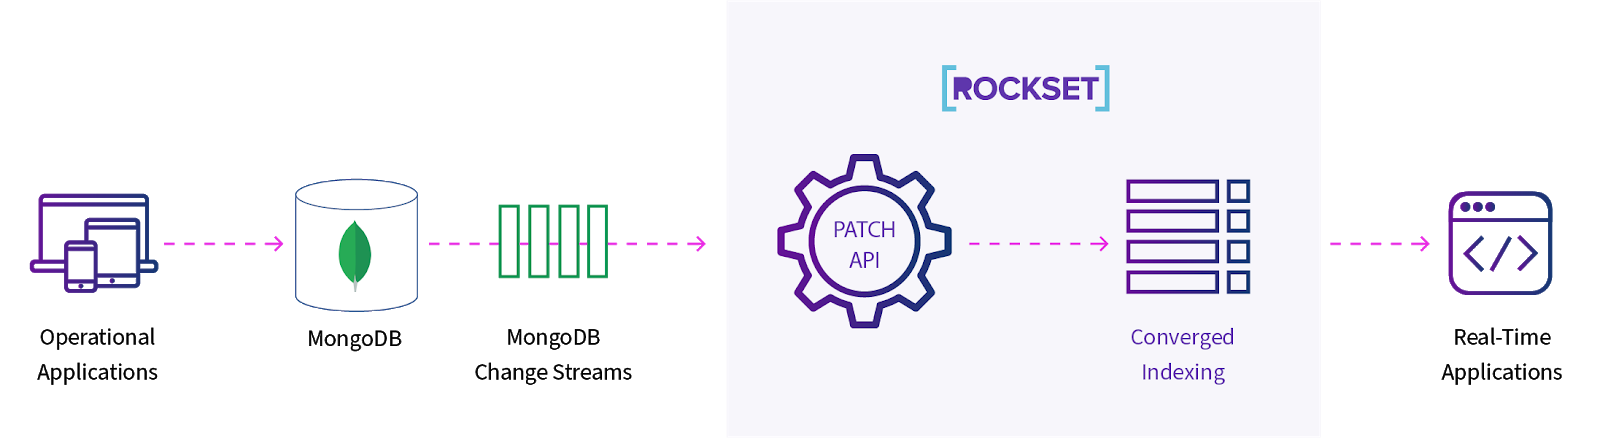 Use of Rockset's Patch API to reindex only updated portions of documents